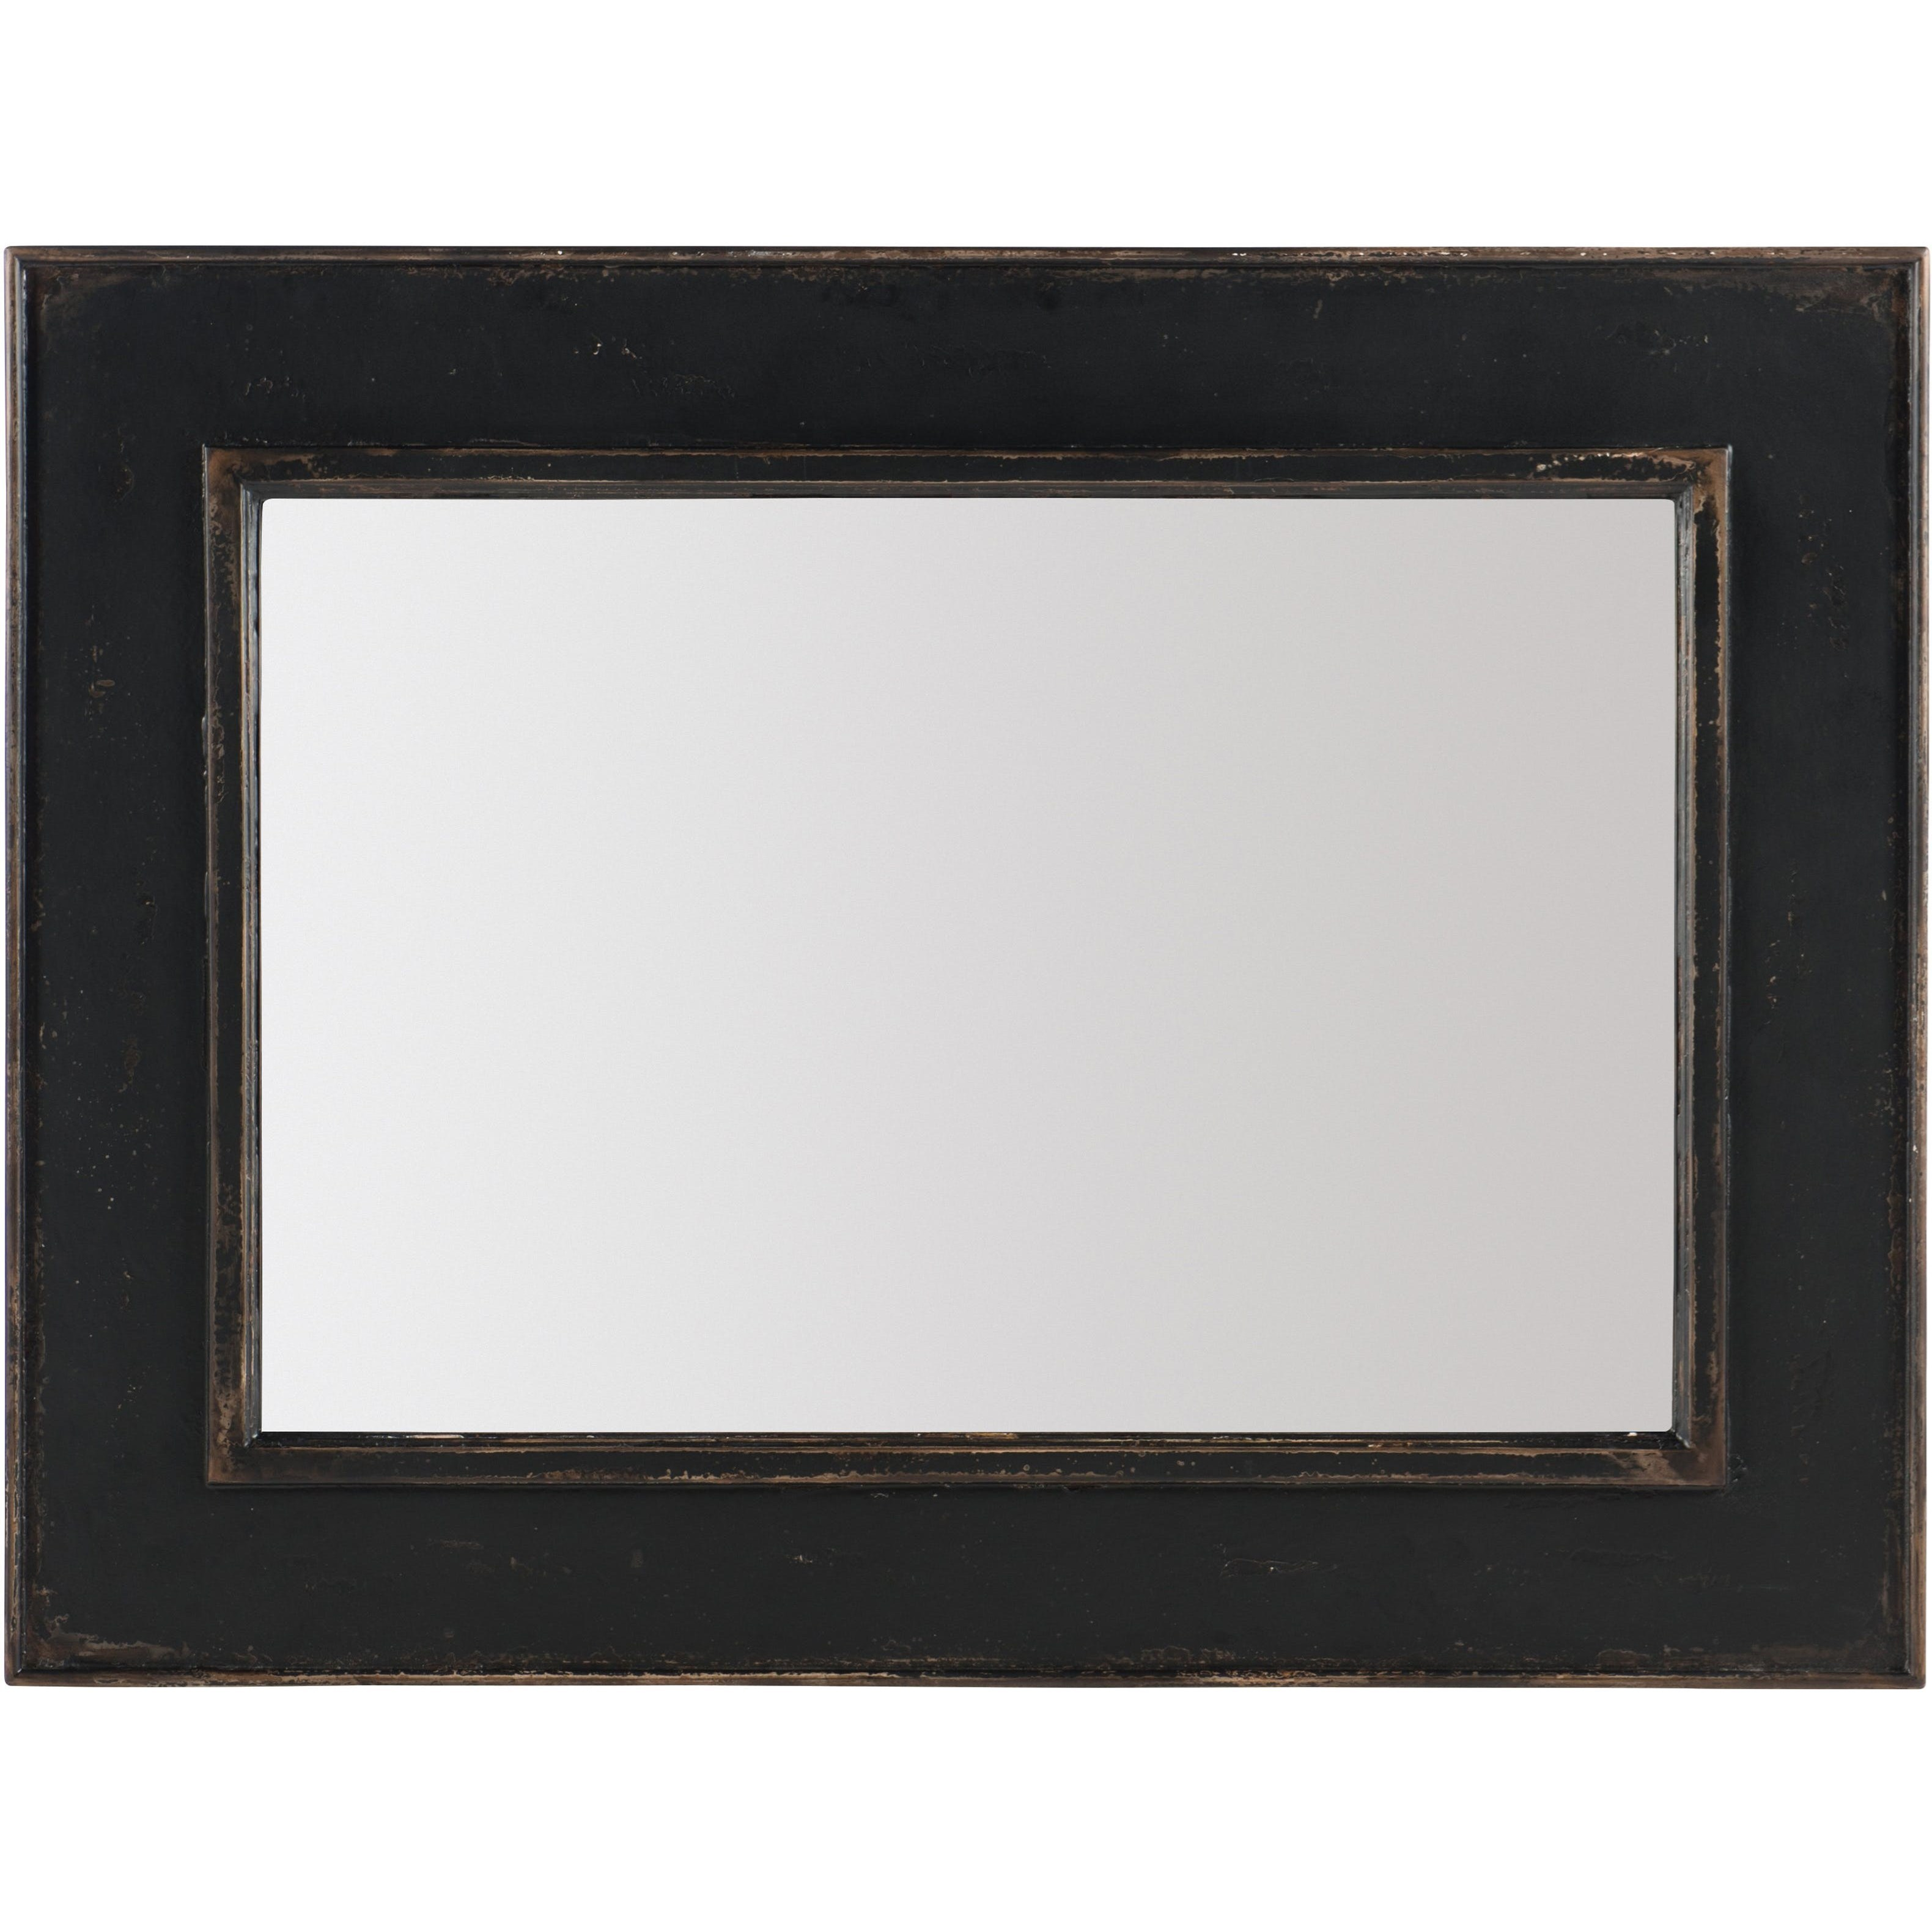 Ciao Bella Landscape Mirror by Hooker Furniture at Stoney Creek Furniture